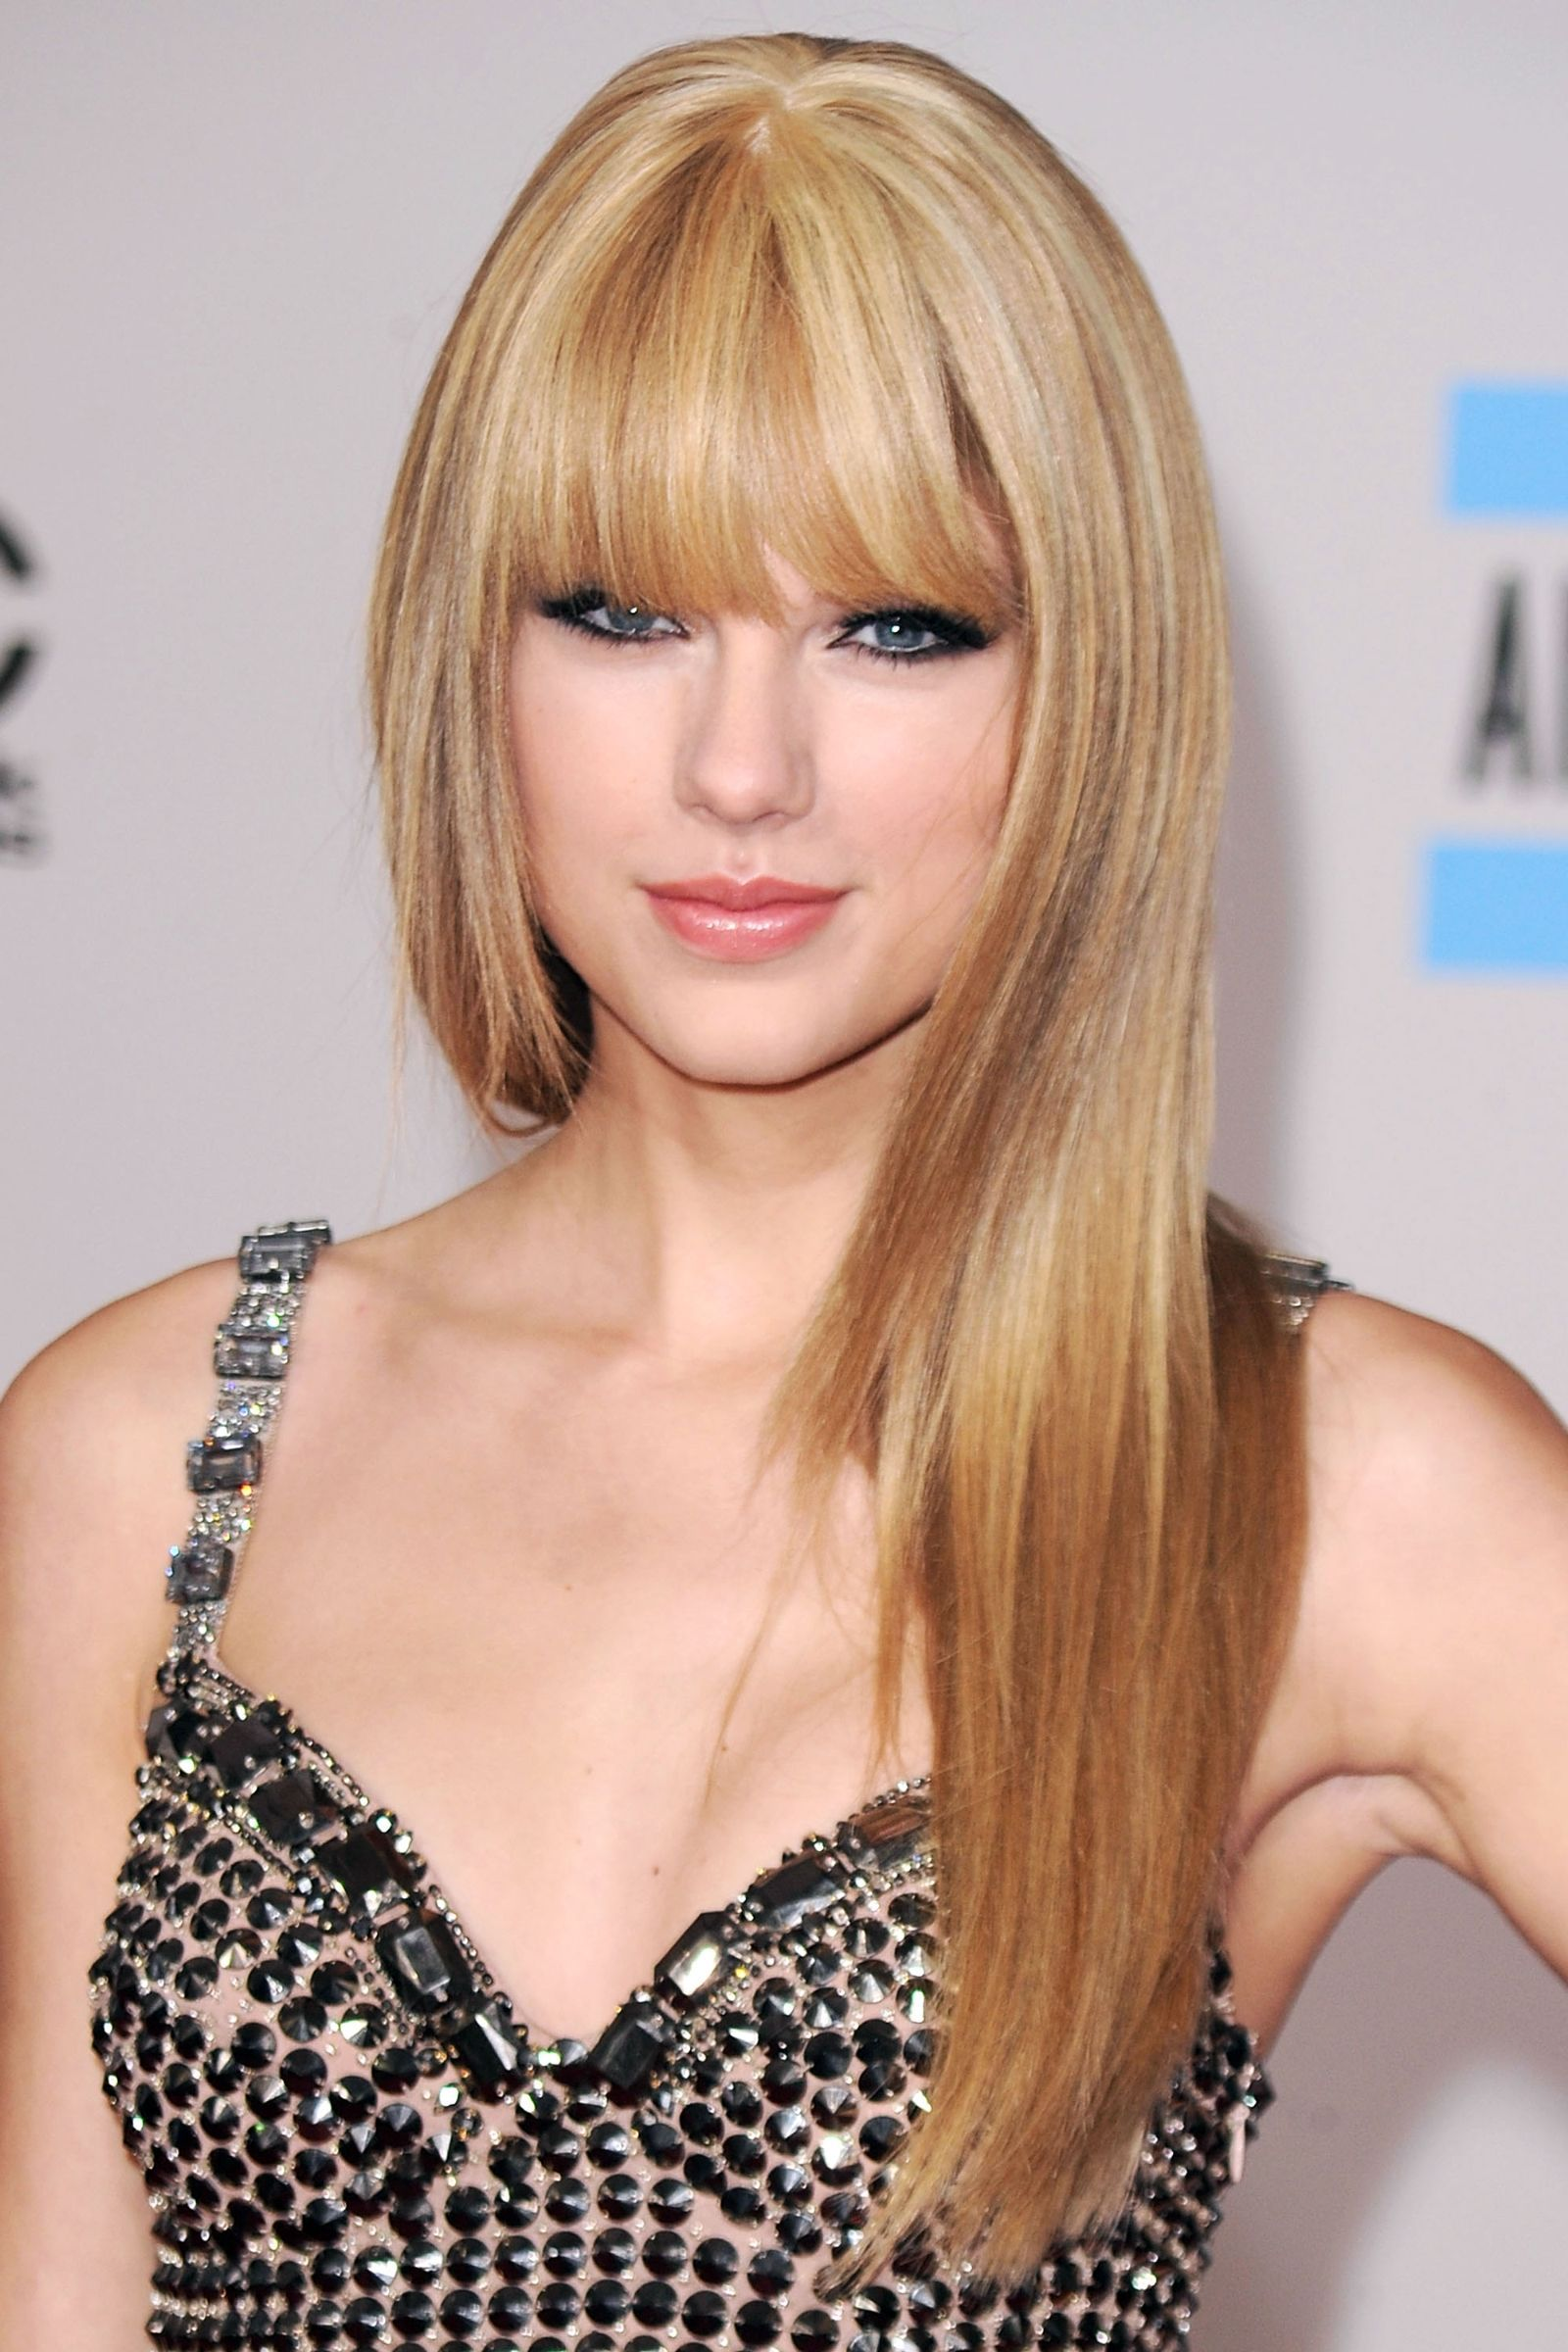 Taylor Swift S Amazing Beauty Transformation Through The Years Taylor Swift Hair Taylor Swift Bangs Straight Hairstyles